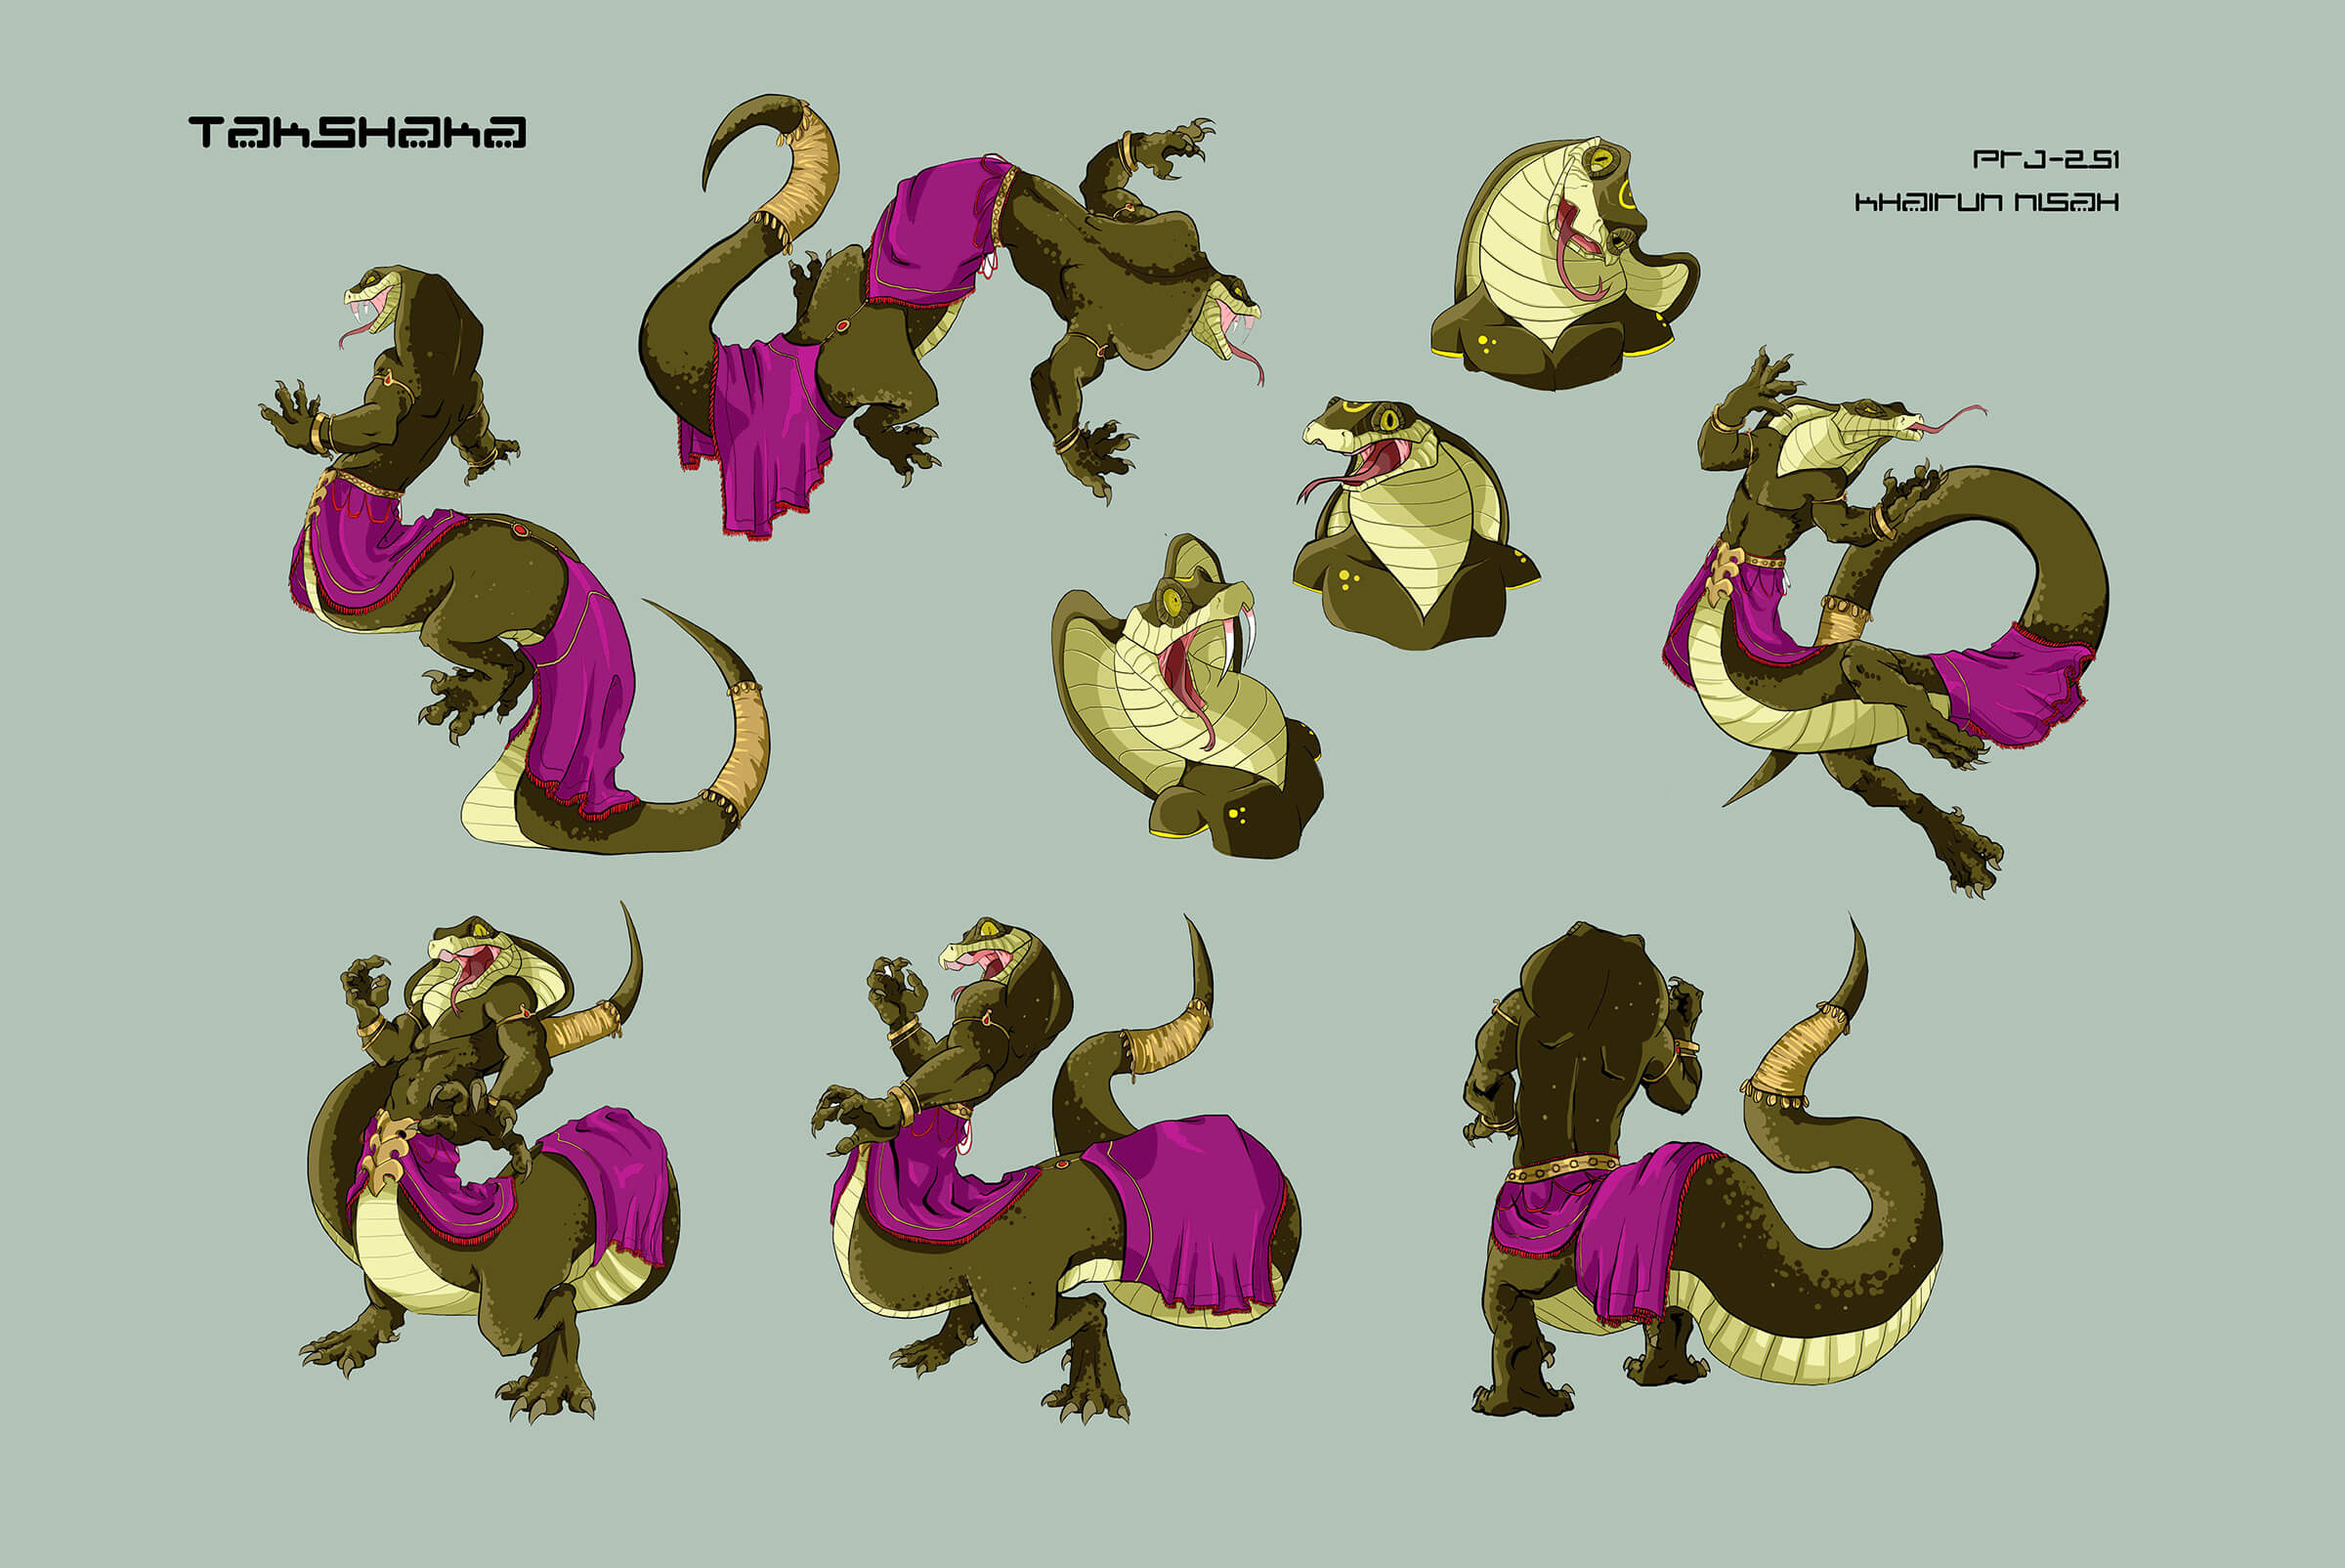 Character sketches of a green naga-like creature in a purple skirt as it dances and delivers various reactions.